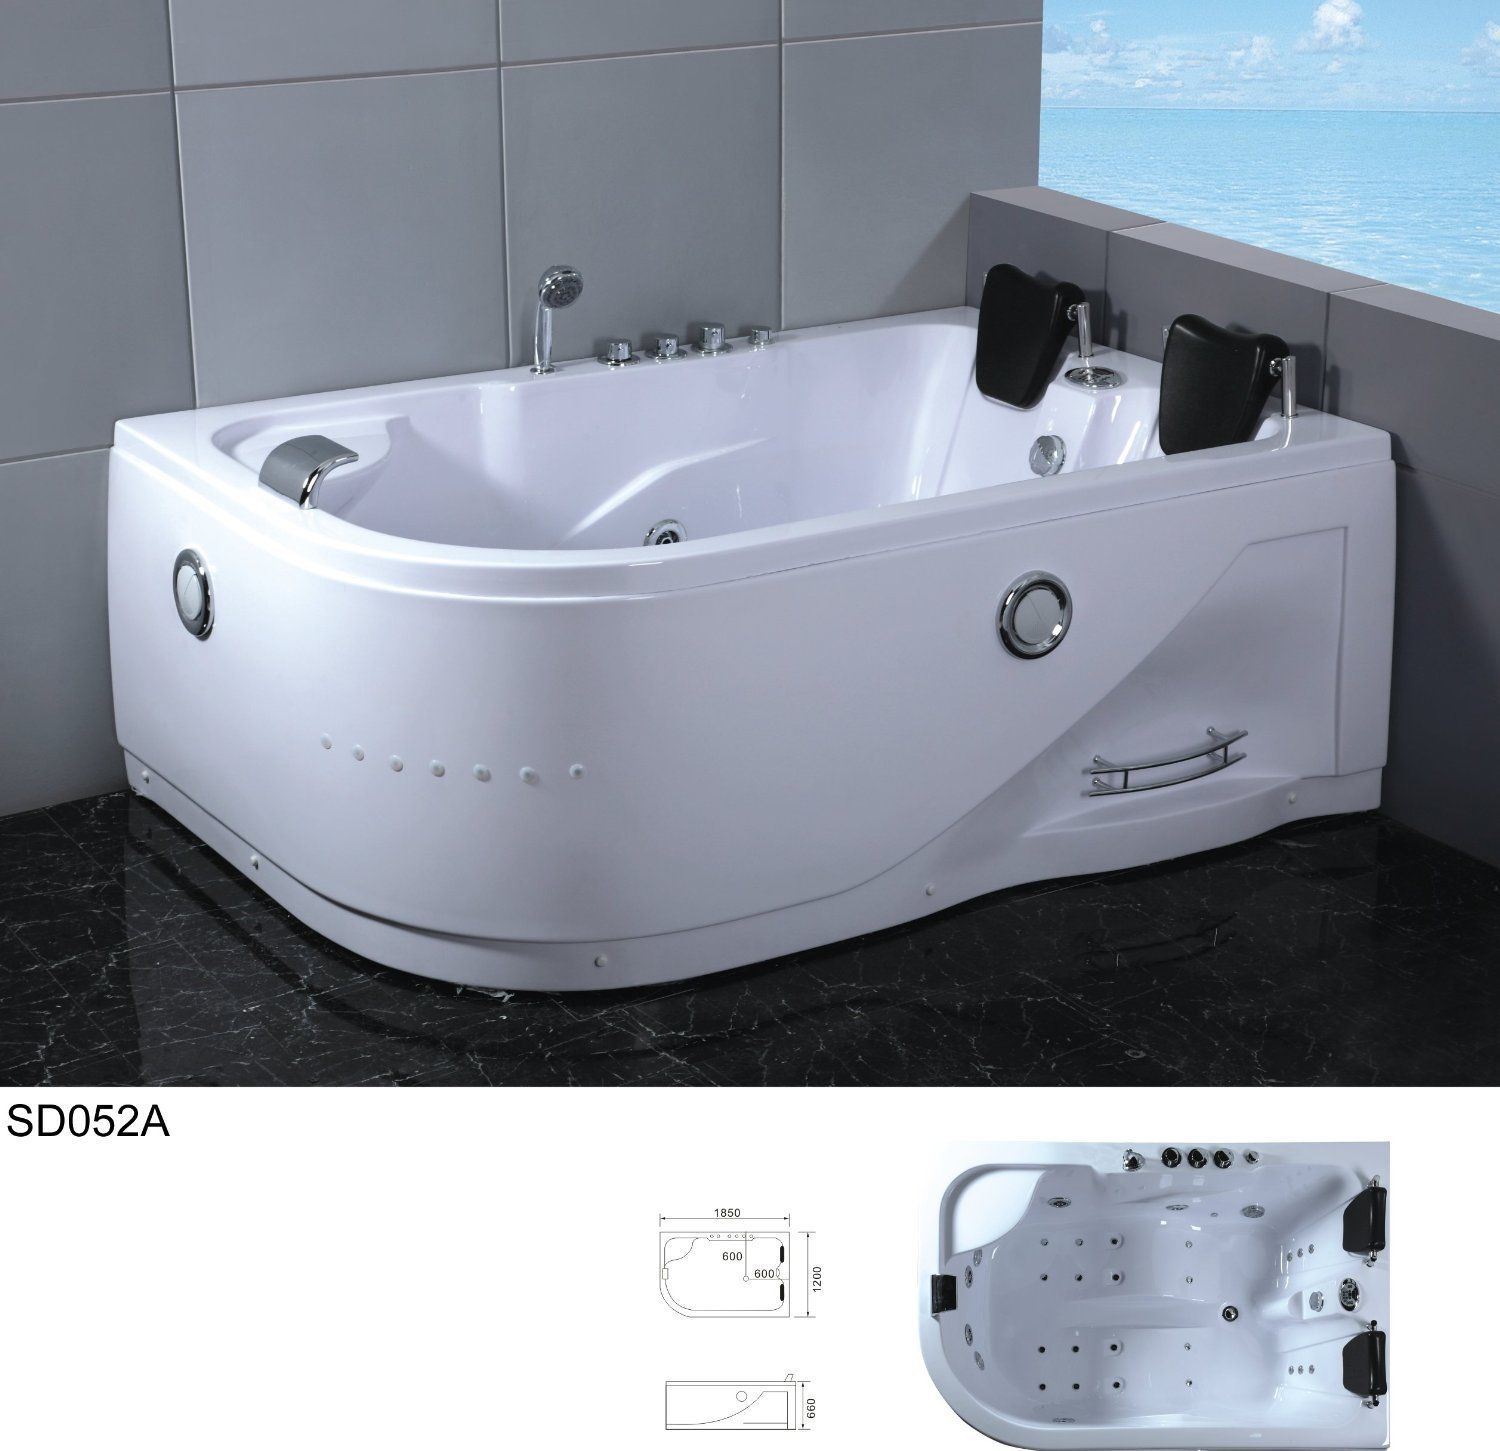 2 Person Bathtubs.2 Person Whirlpool Bathtubs. Two Person Soaker Tub ...